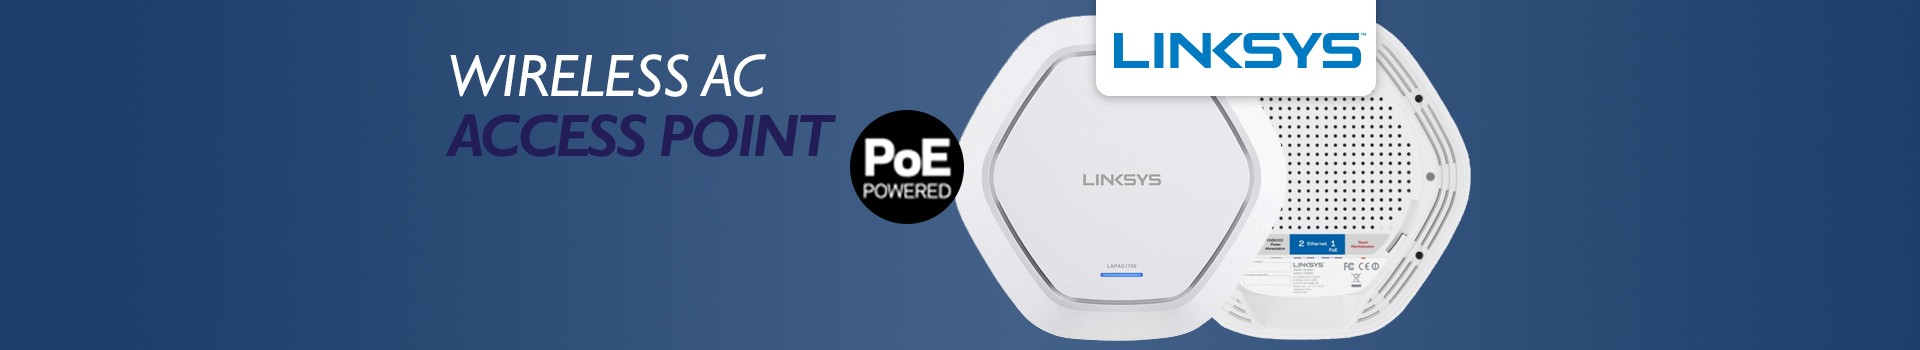 Linksys prijsverlaging accesspoints